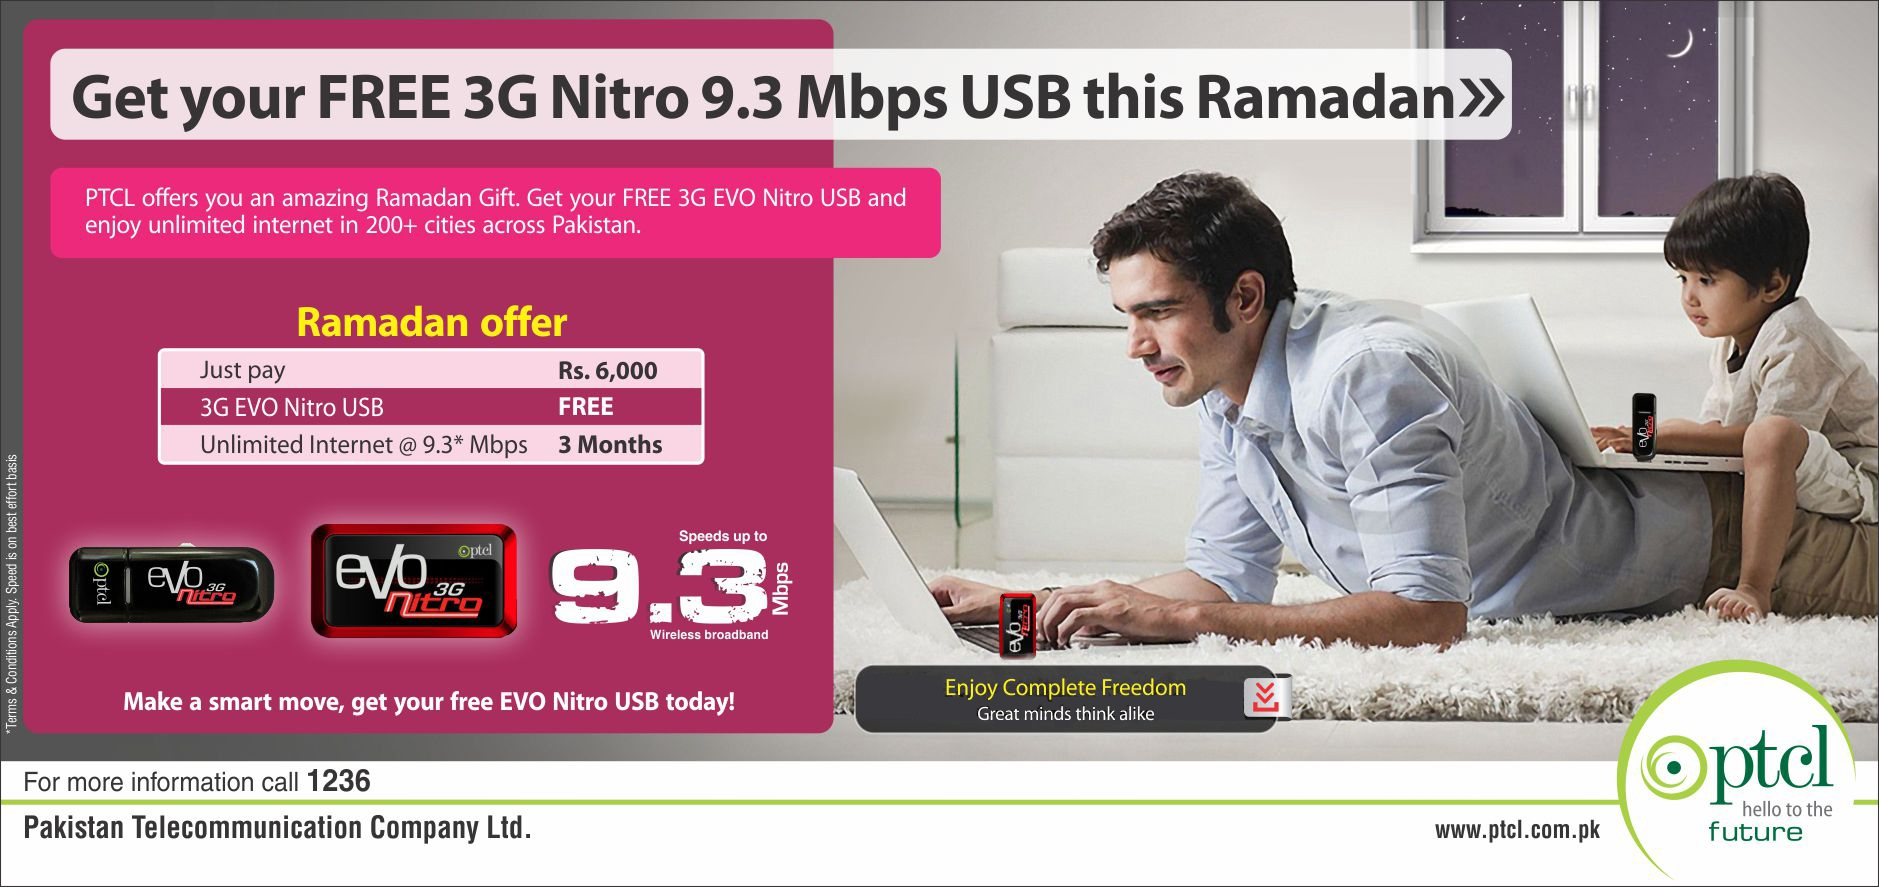 EVO NITRO 9.3 Ramazan Offer